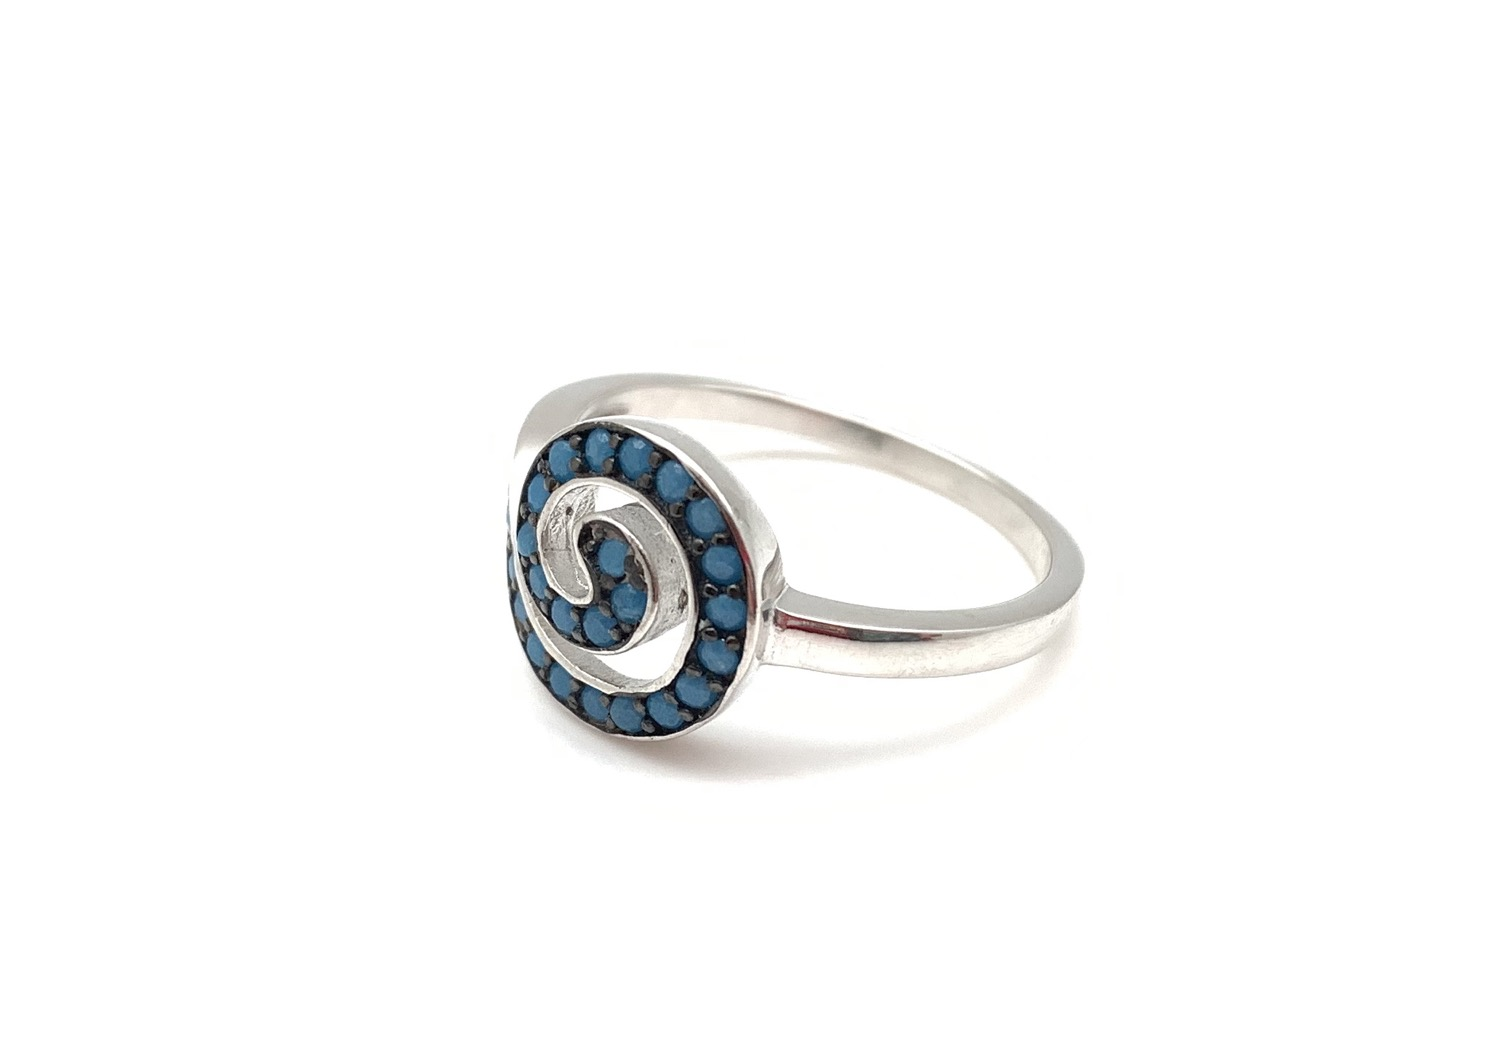 Thumbnail: SR4 Micro Turquoise Sterling Silver Swirl Ring Size 5, 6, 7, 8, 9, 10